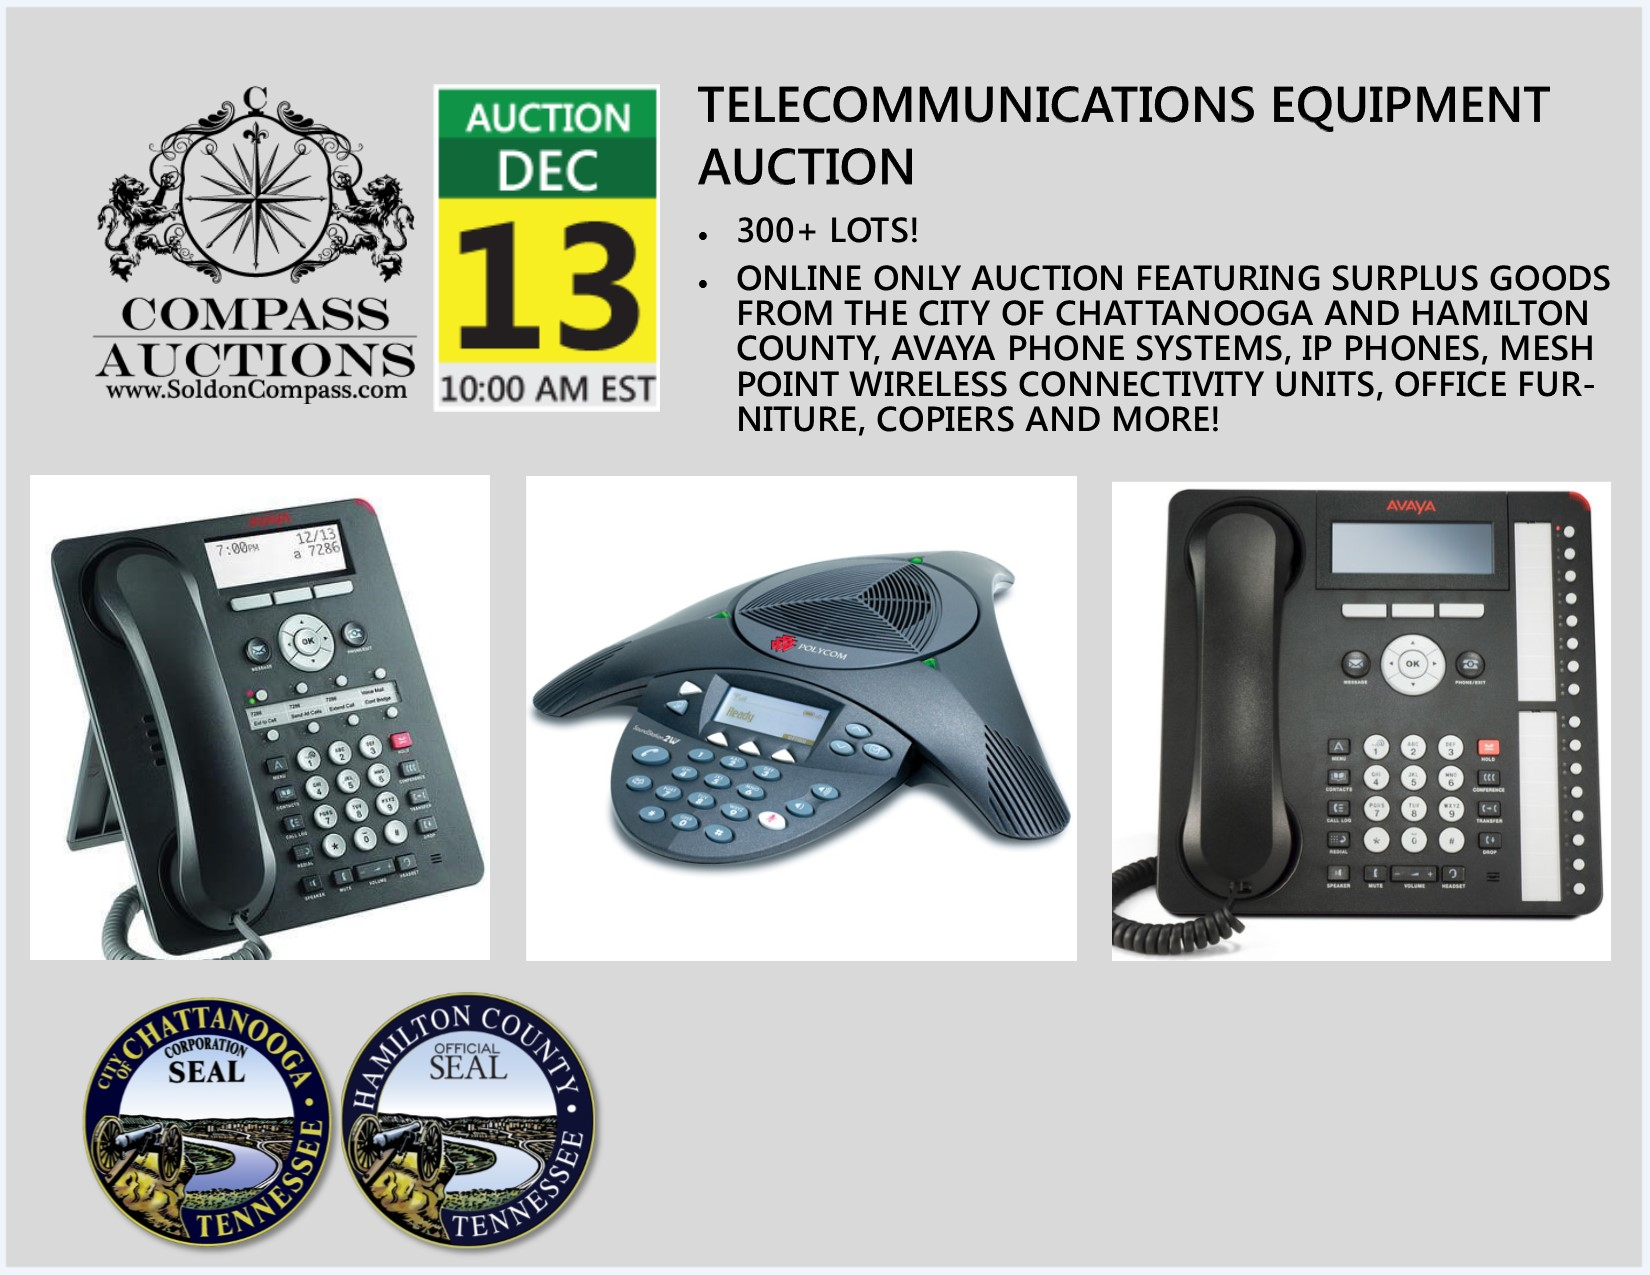 December 13 Telecommunications Equipment Auction